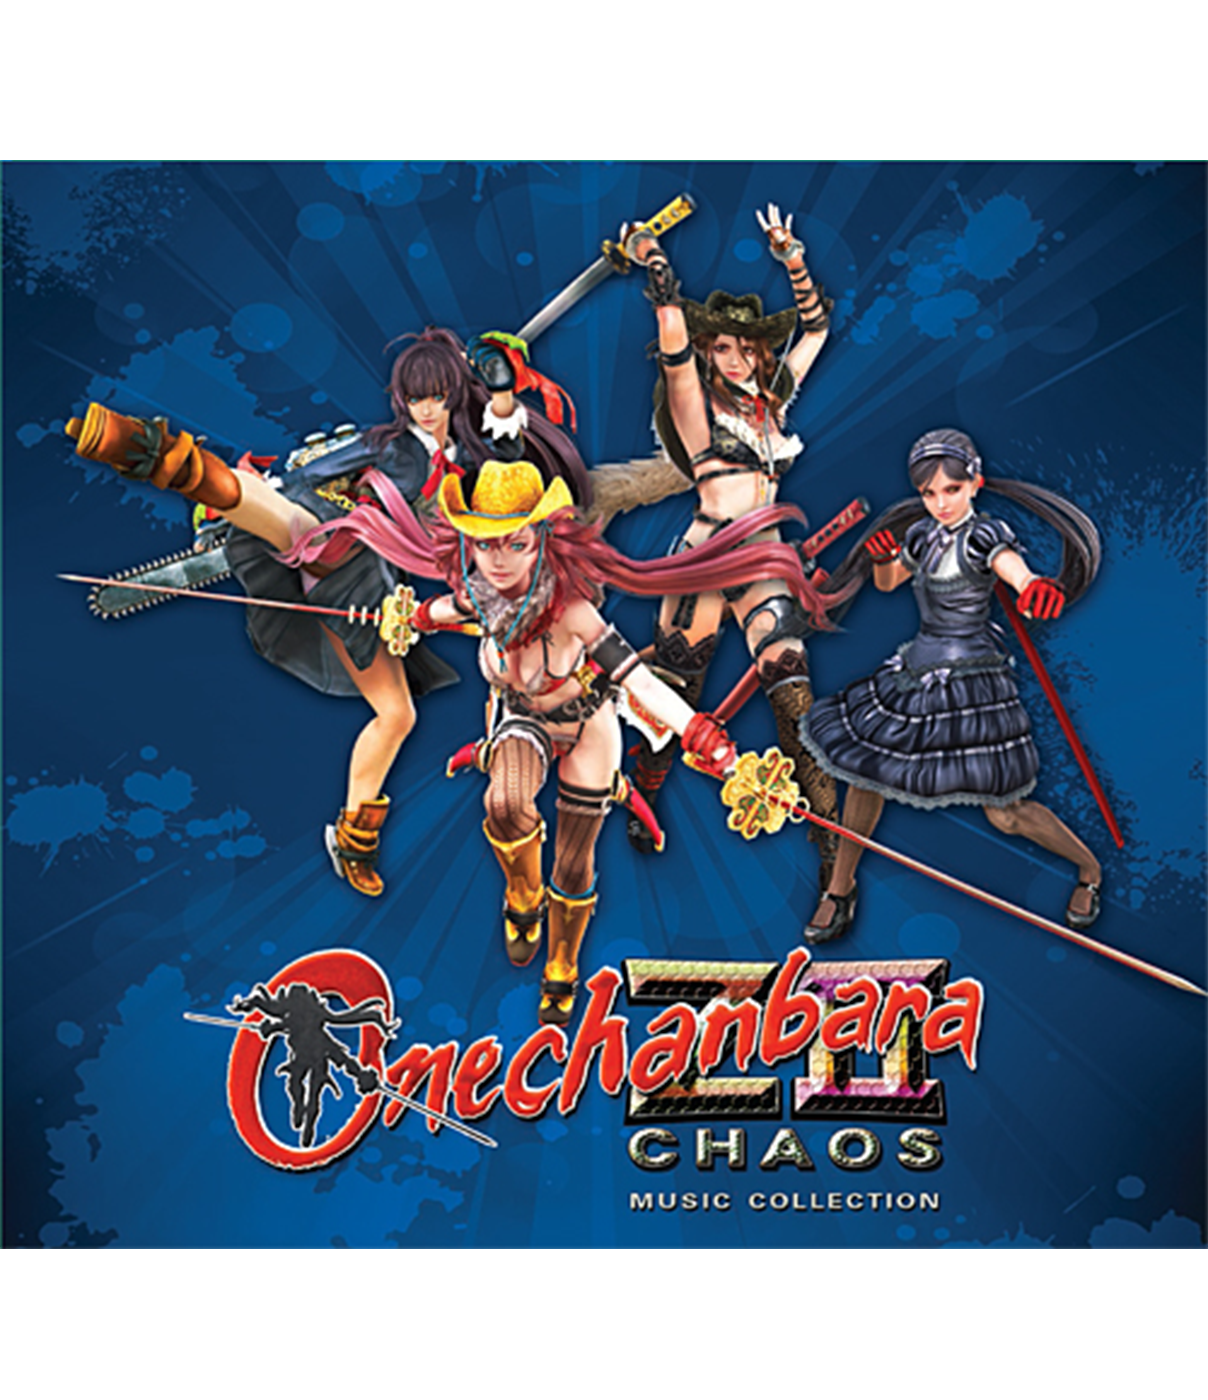 Onechanbara Z2 Chaos Soundtrack Xseed Games Store